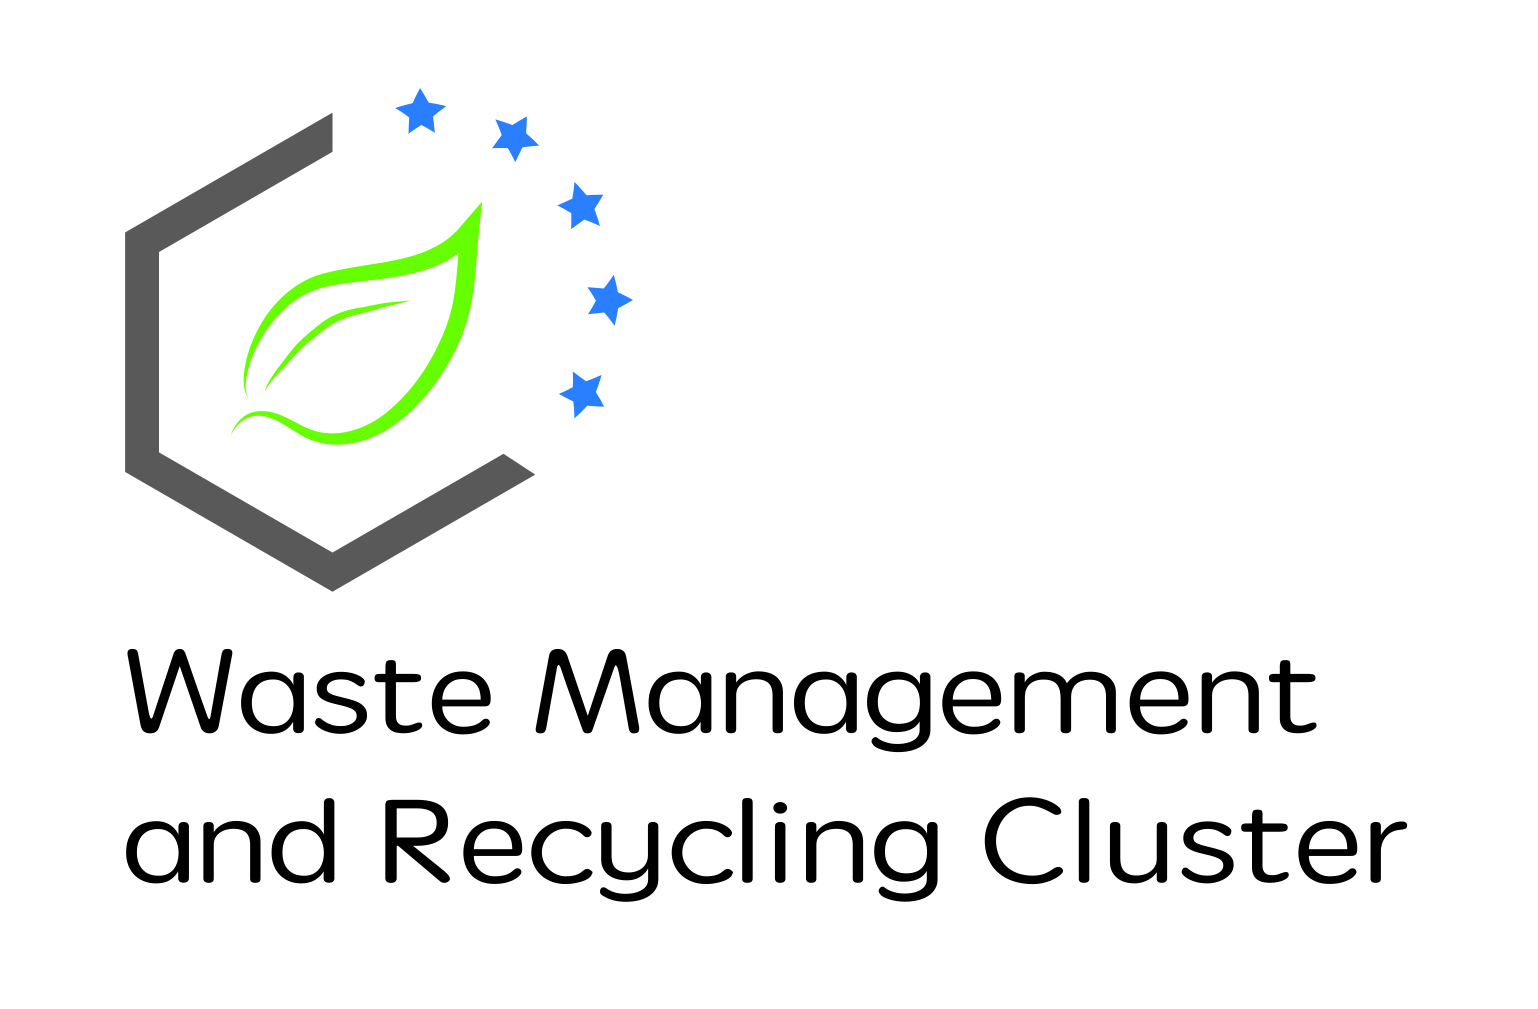 Waste Management and Recycling Cluster logo